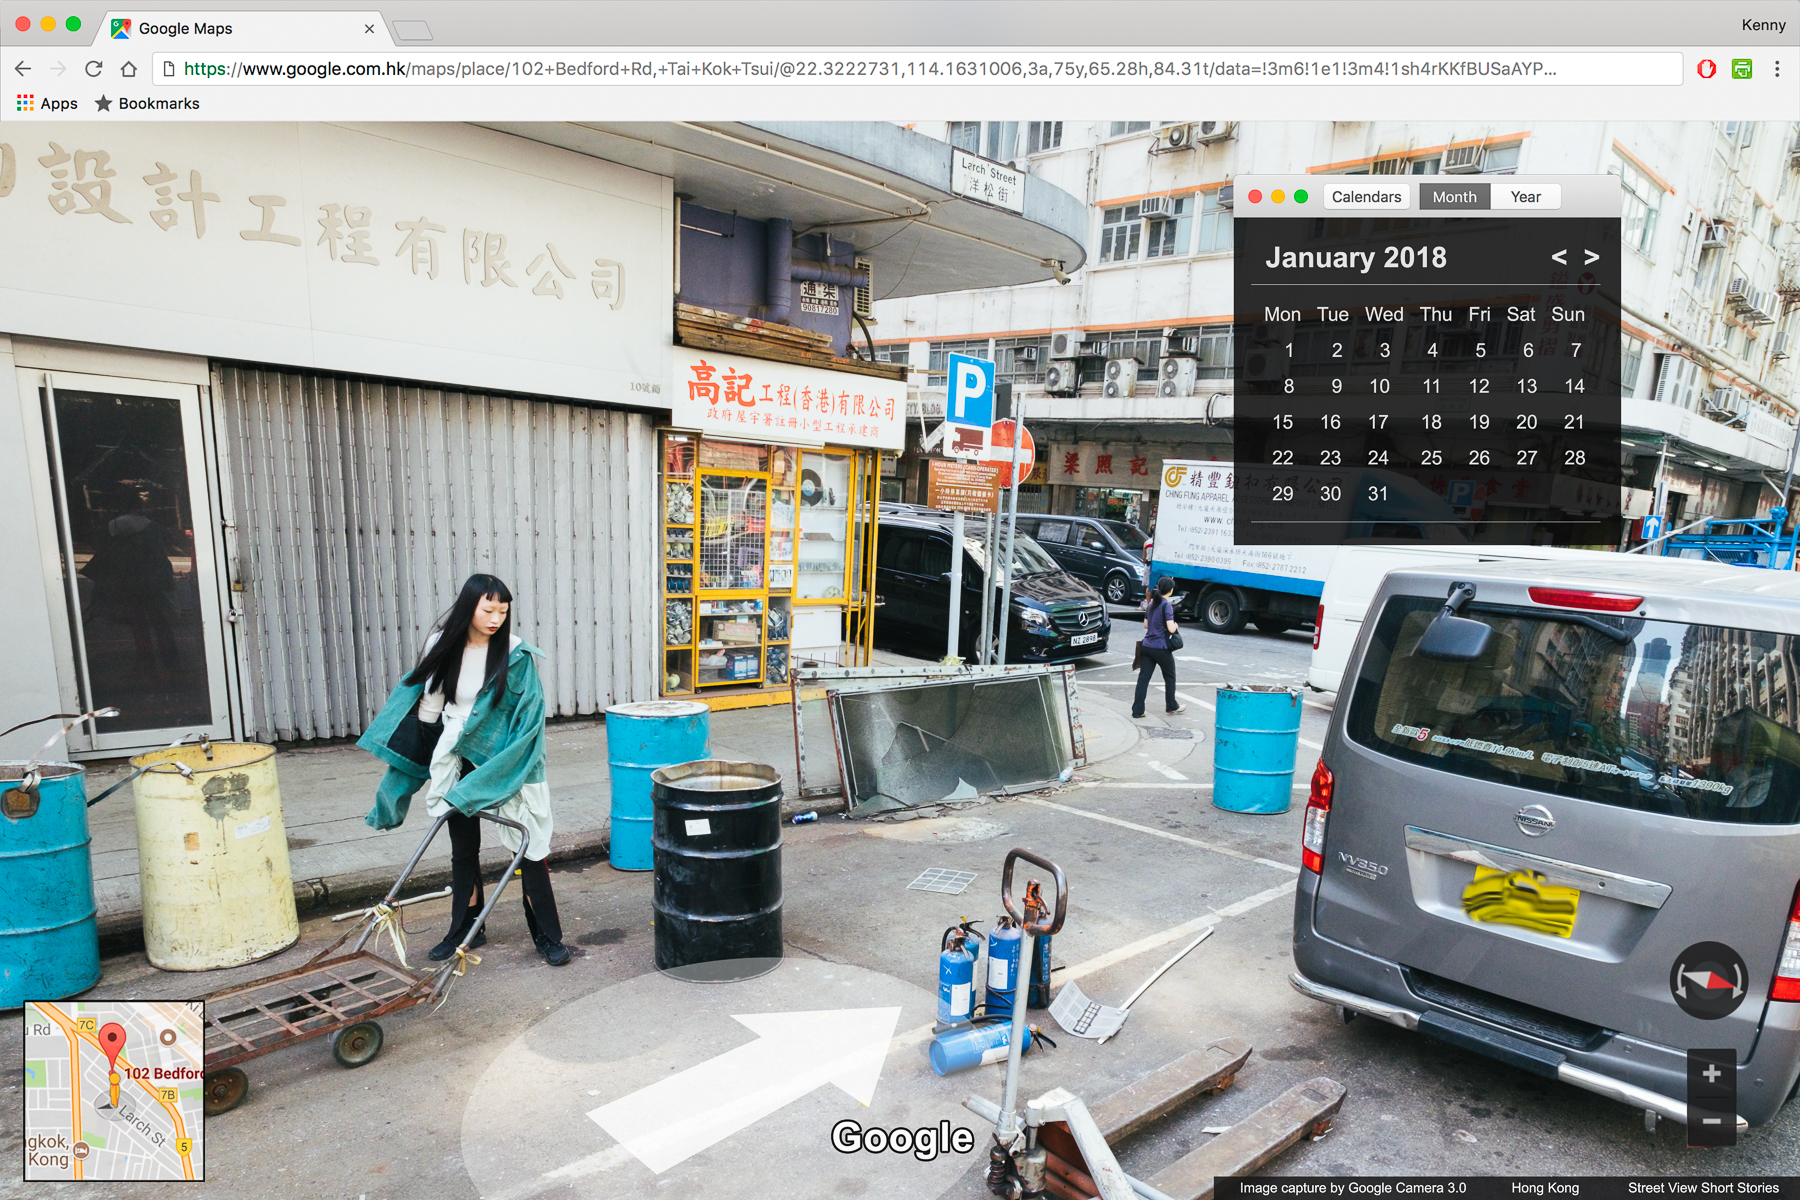 Street View Short Stories 2018 Calendar